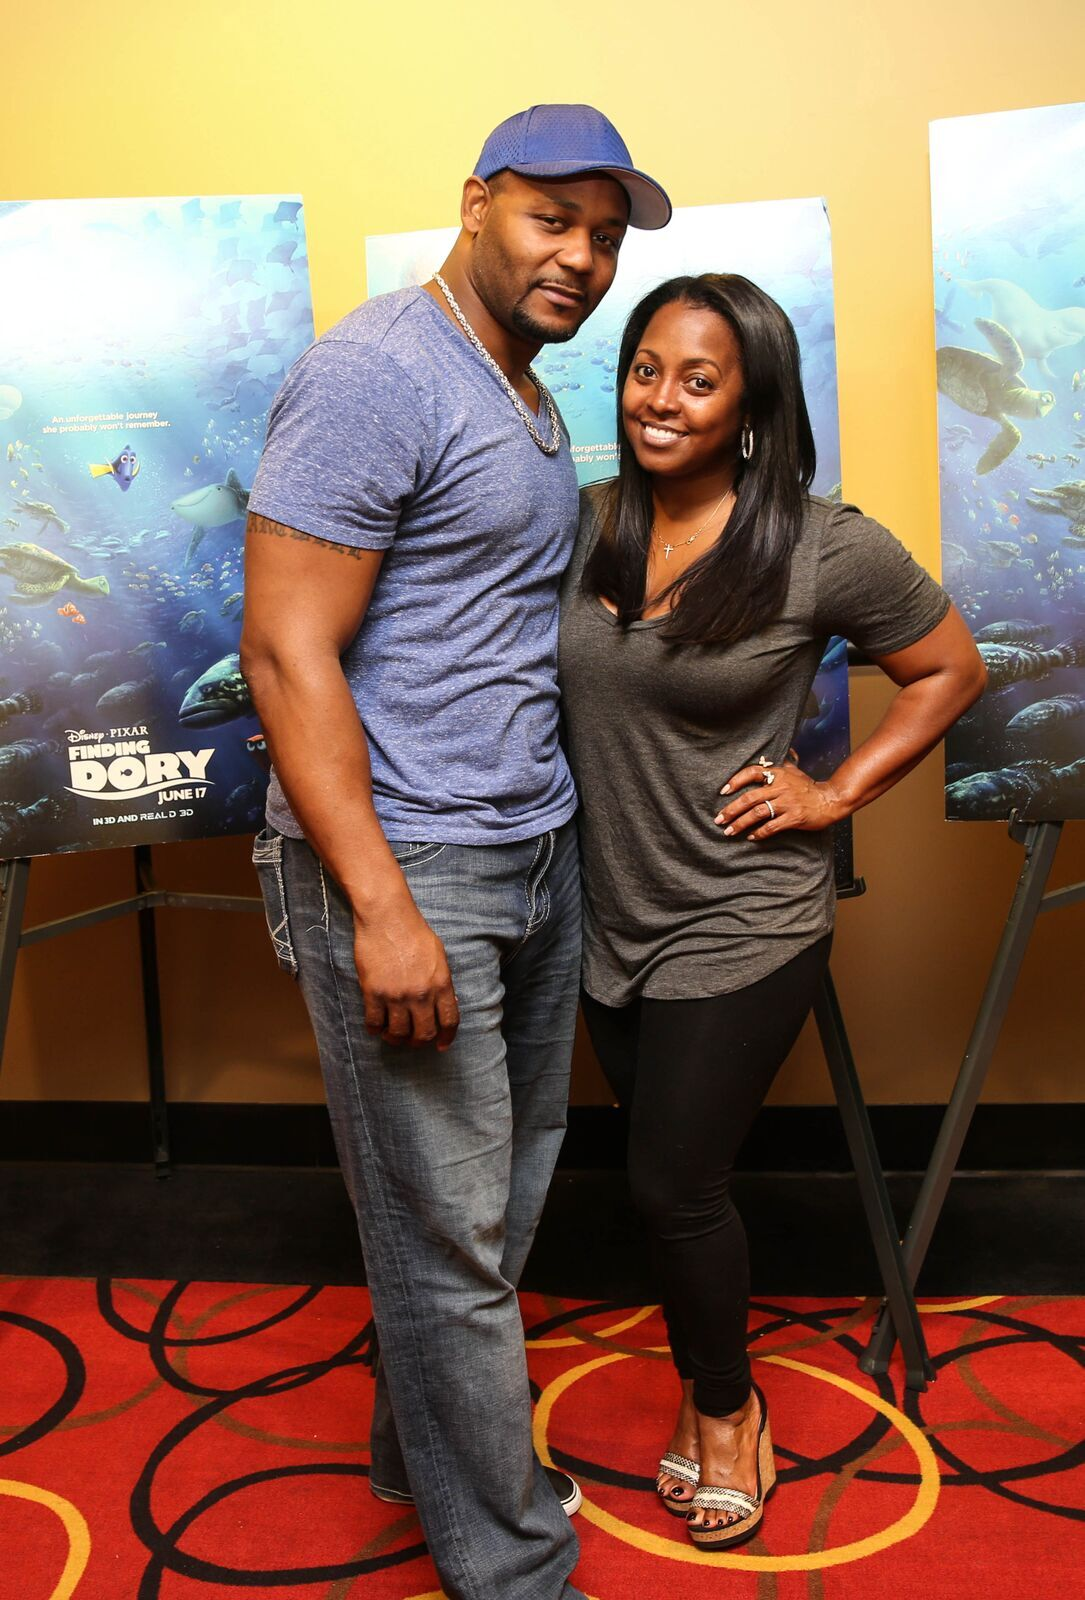 Keshia Knight Pulliam and Ed Hartwell attend 'Finding Dory' advance screening at AMC Phipps Plaza on June 15, 2016 in Atlanta, Georgia. | Source: Getty Images